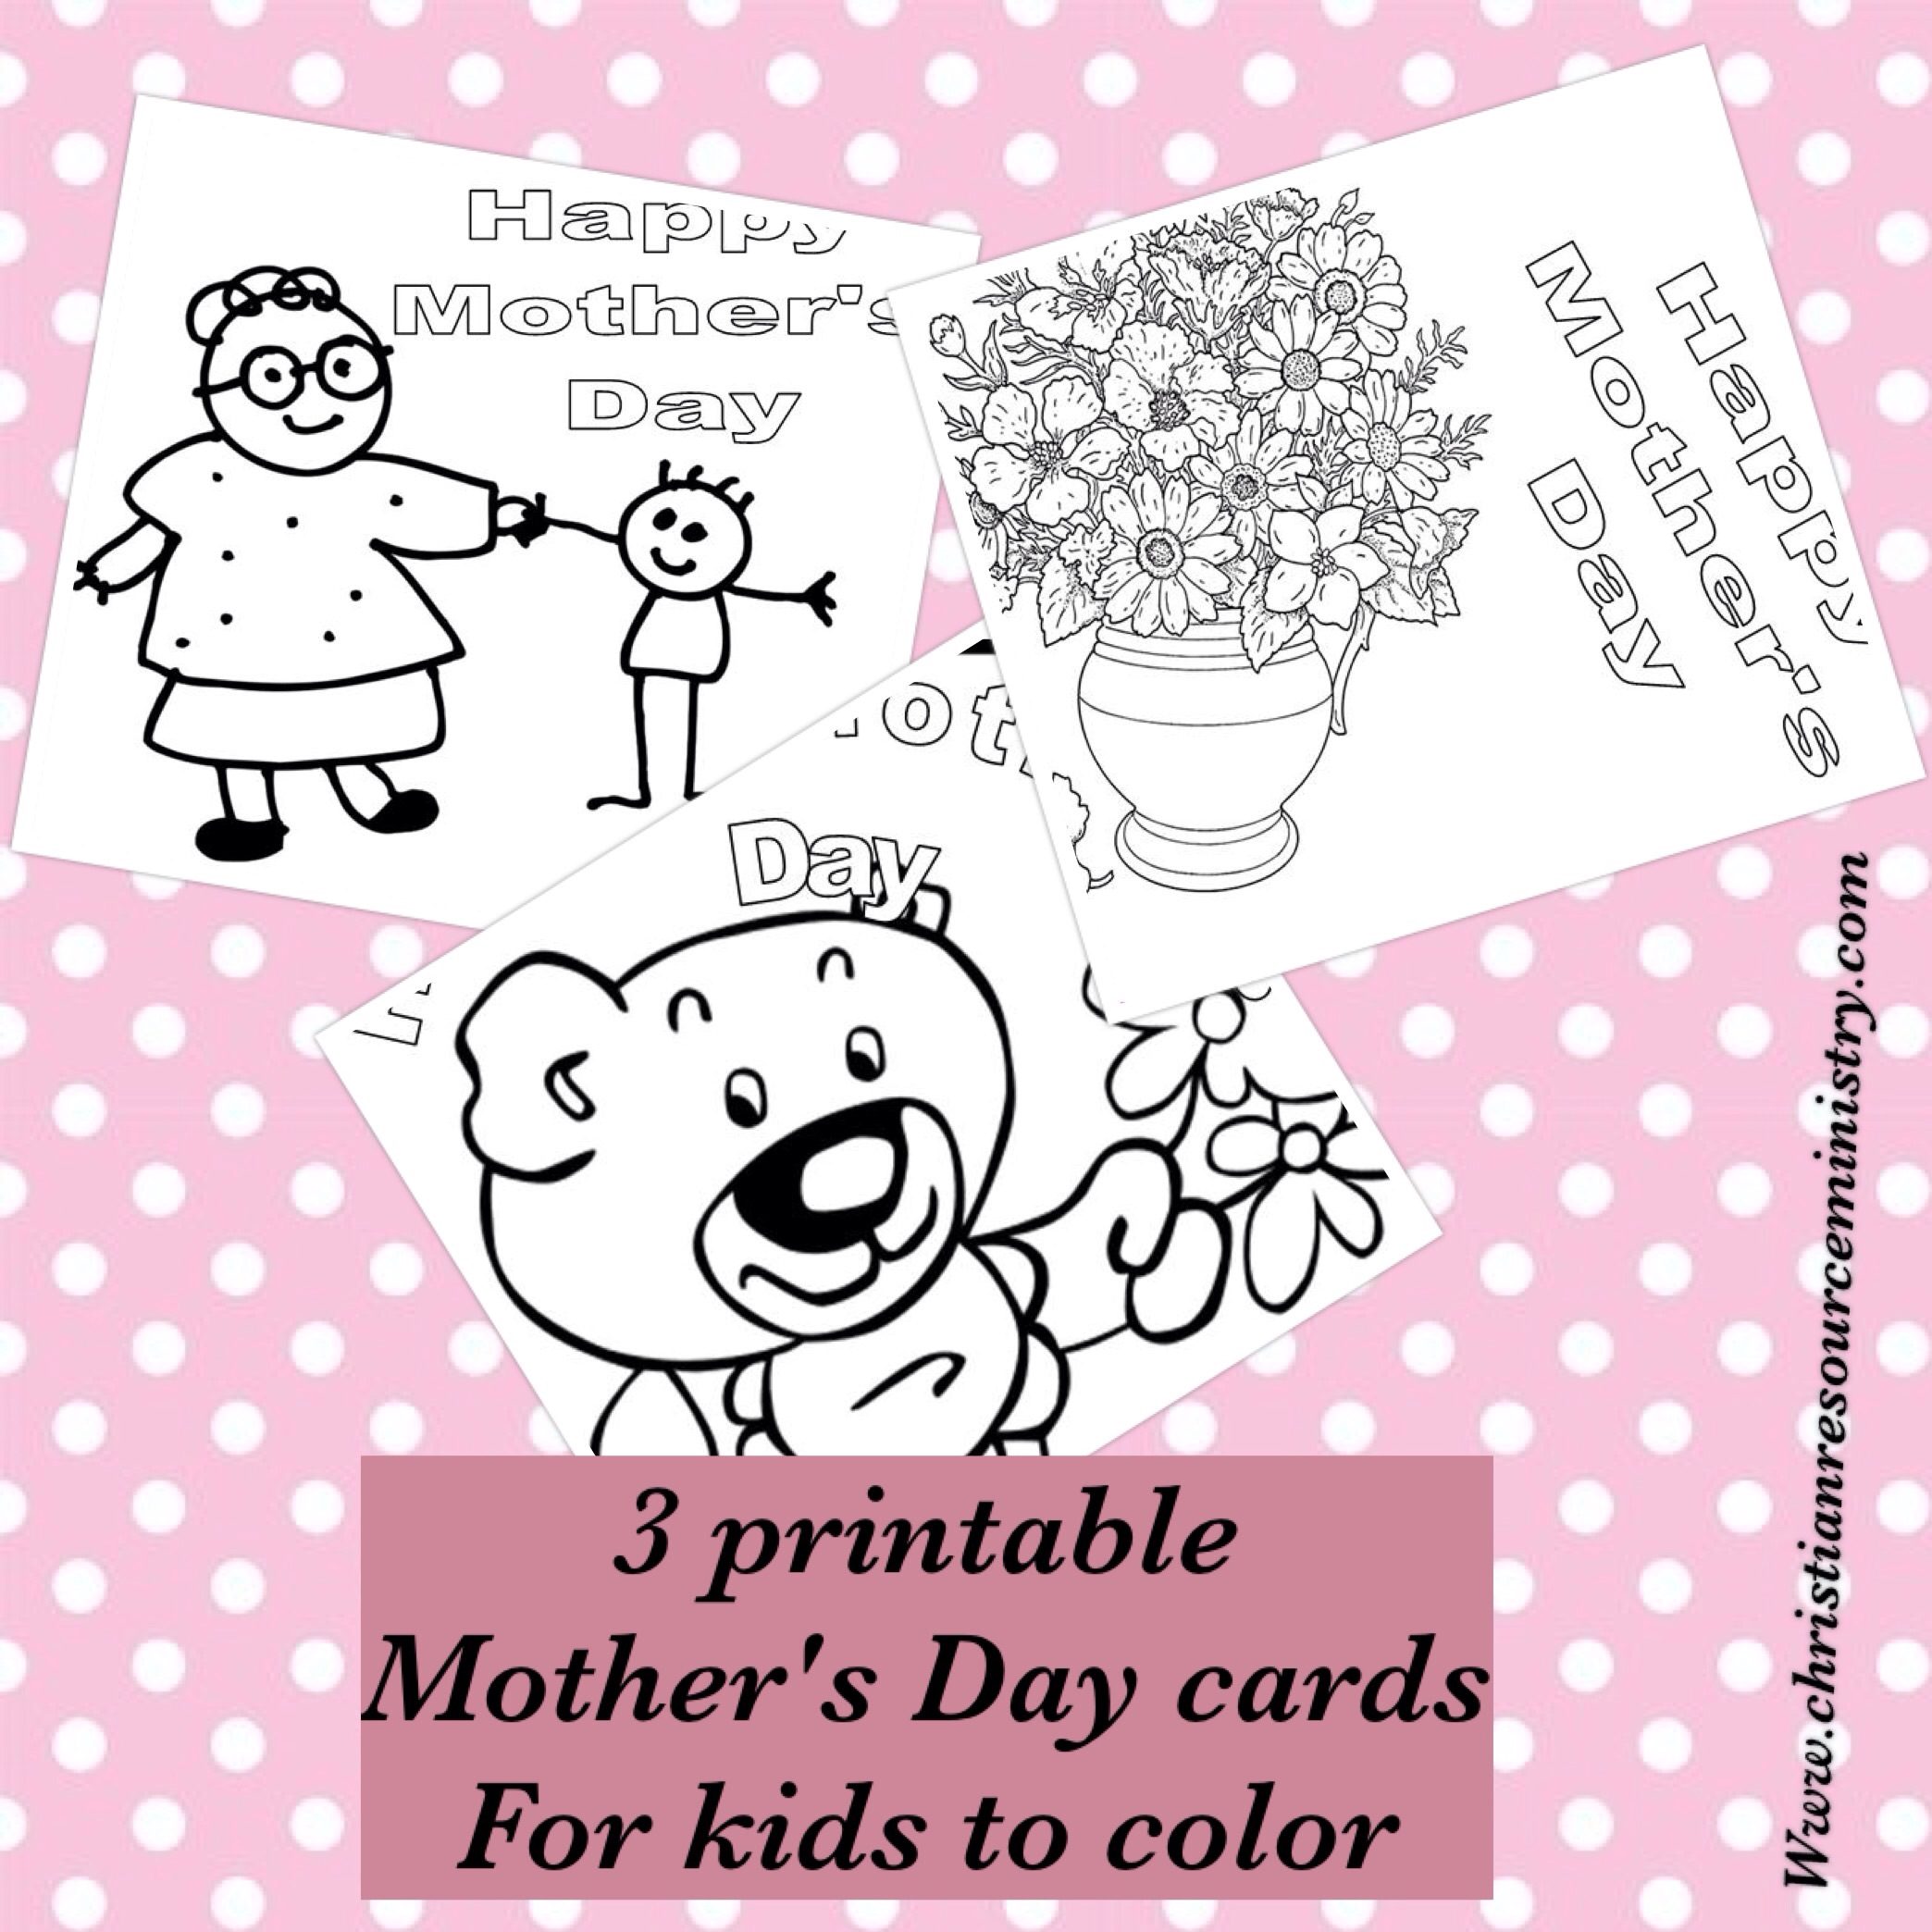 image regarding Printable Mothers Day Cards for Kids referred to as Printable Moms Working day Playing cards for youngsters